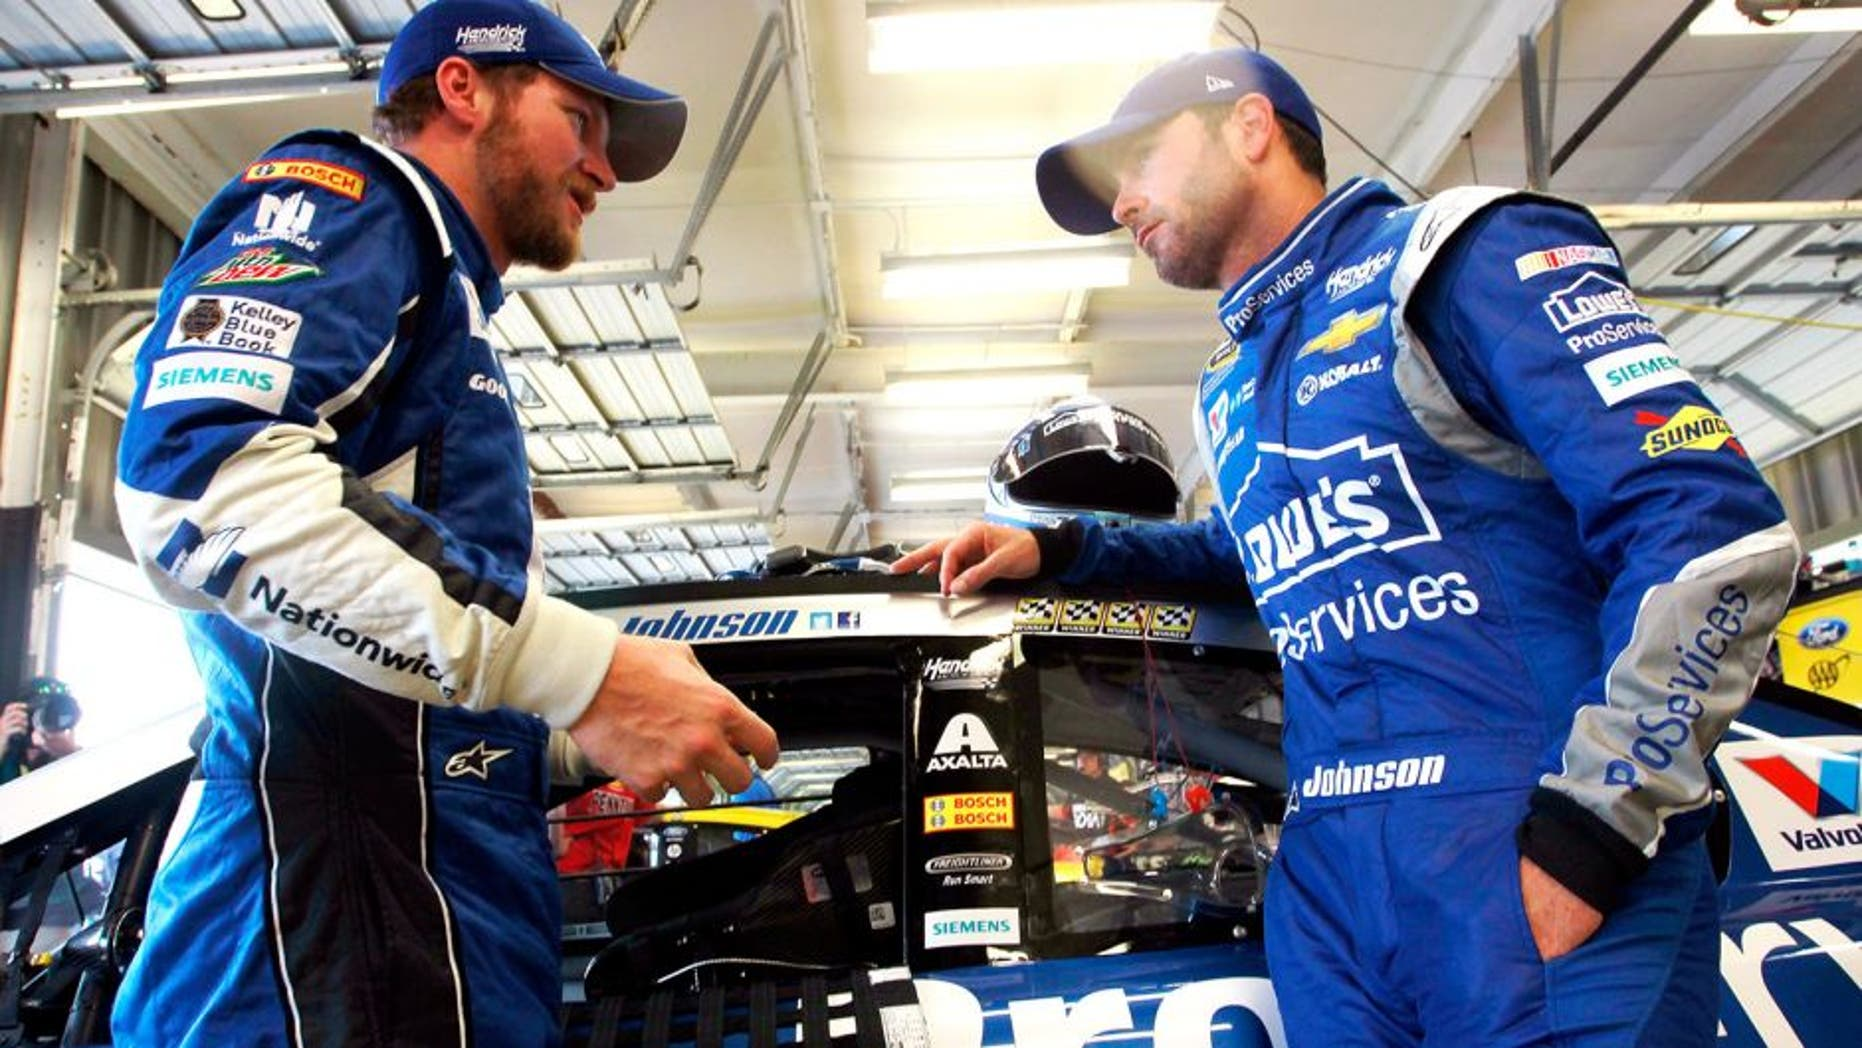 SPARTA, KY - JULY 10: Dale Earnhardt Jr., left, driver of the #88 Nationwide Chevrolet, and Jimmie Johnson, driver of the #48 Lowe's Pro Services Chevrolet, talk in the garage area during practice for the NASCAR Sprint Cup Series Quaker State 400 Presented by Advance Auto Parts at Kentucky Speedway on July 10, 2015 in Sparta, Kentucky. (Photo by Brian Lawdermilk/NASCAR via Getty Images)